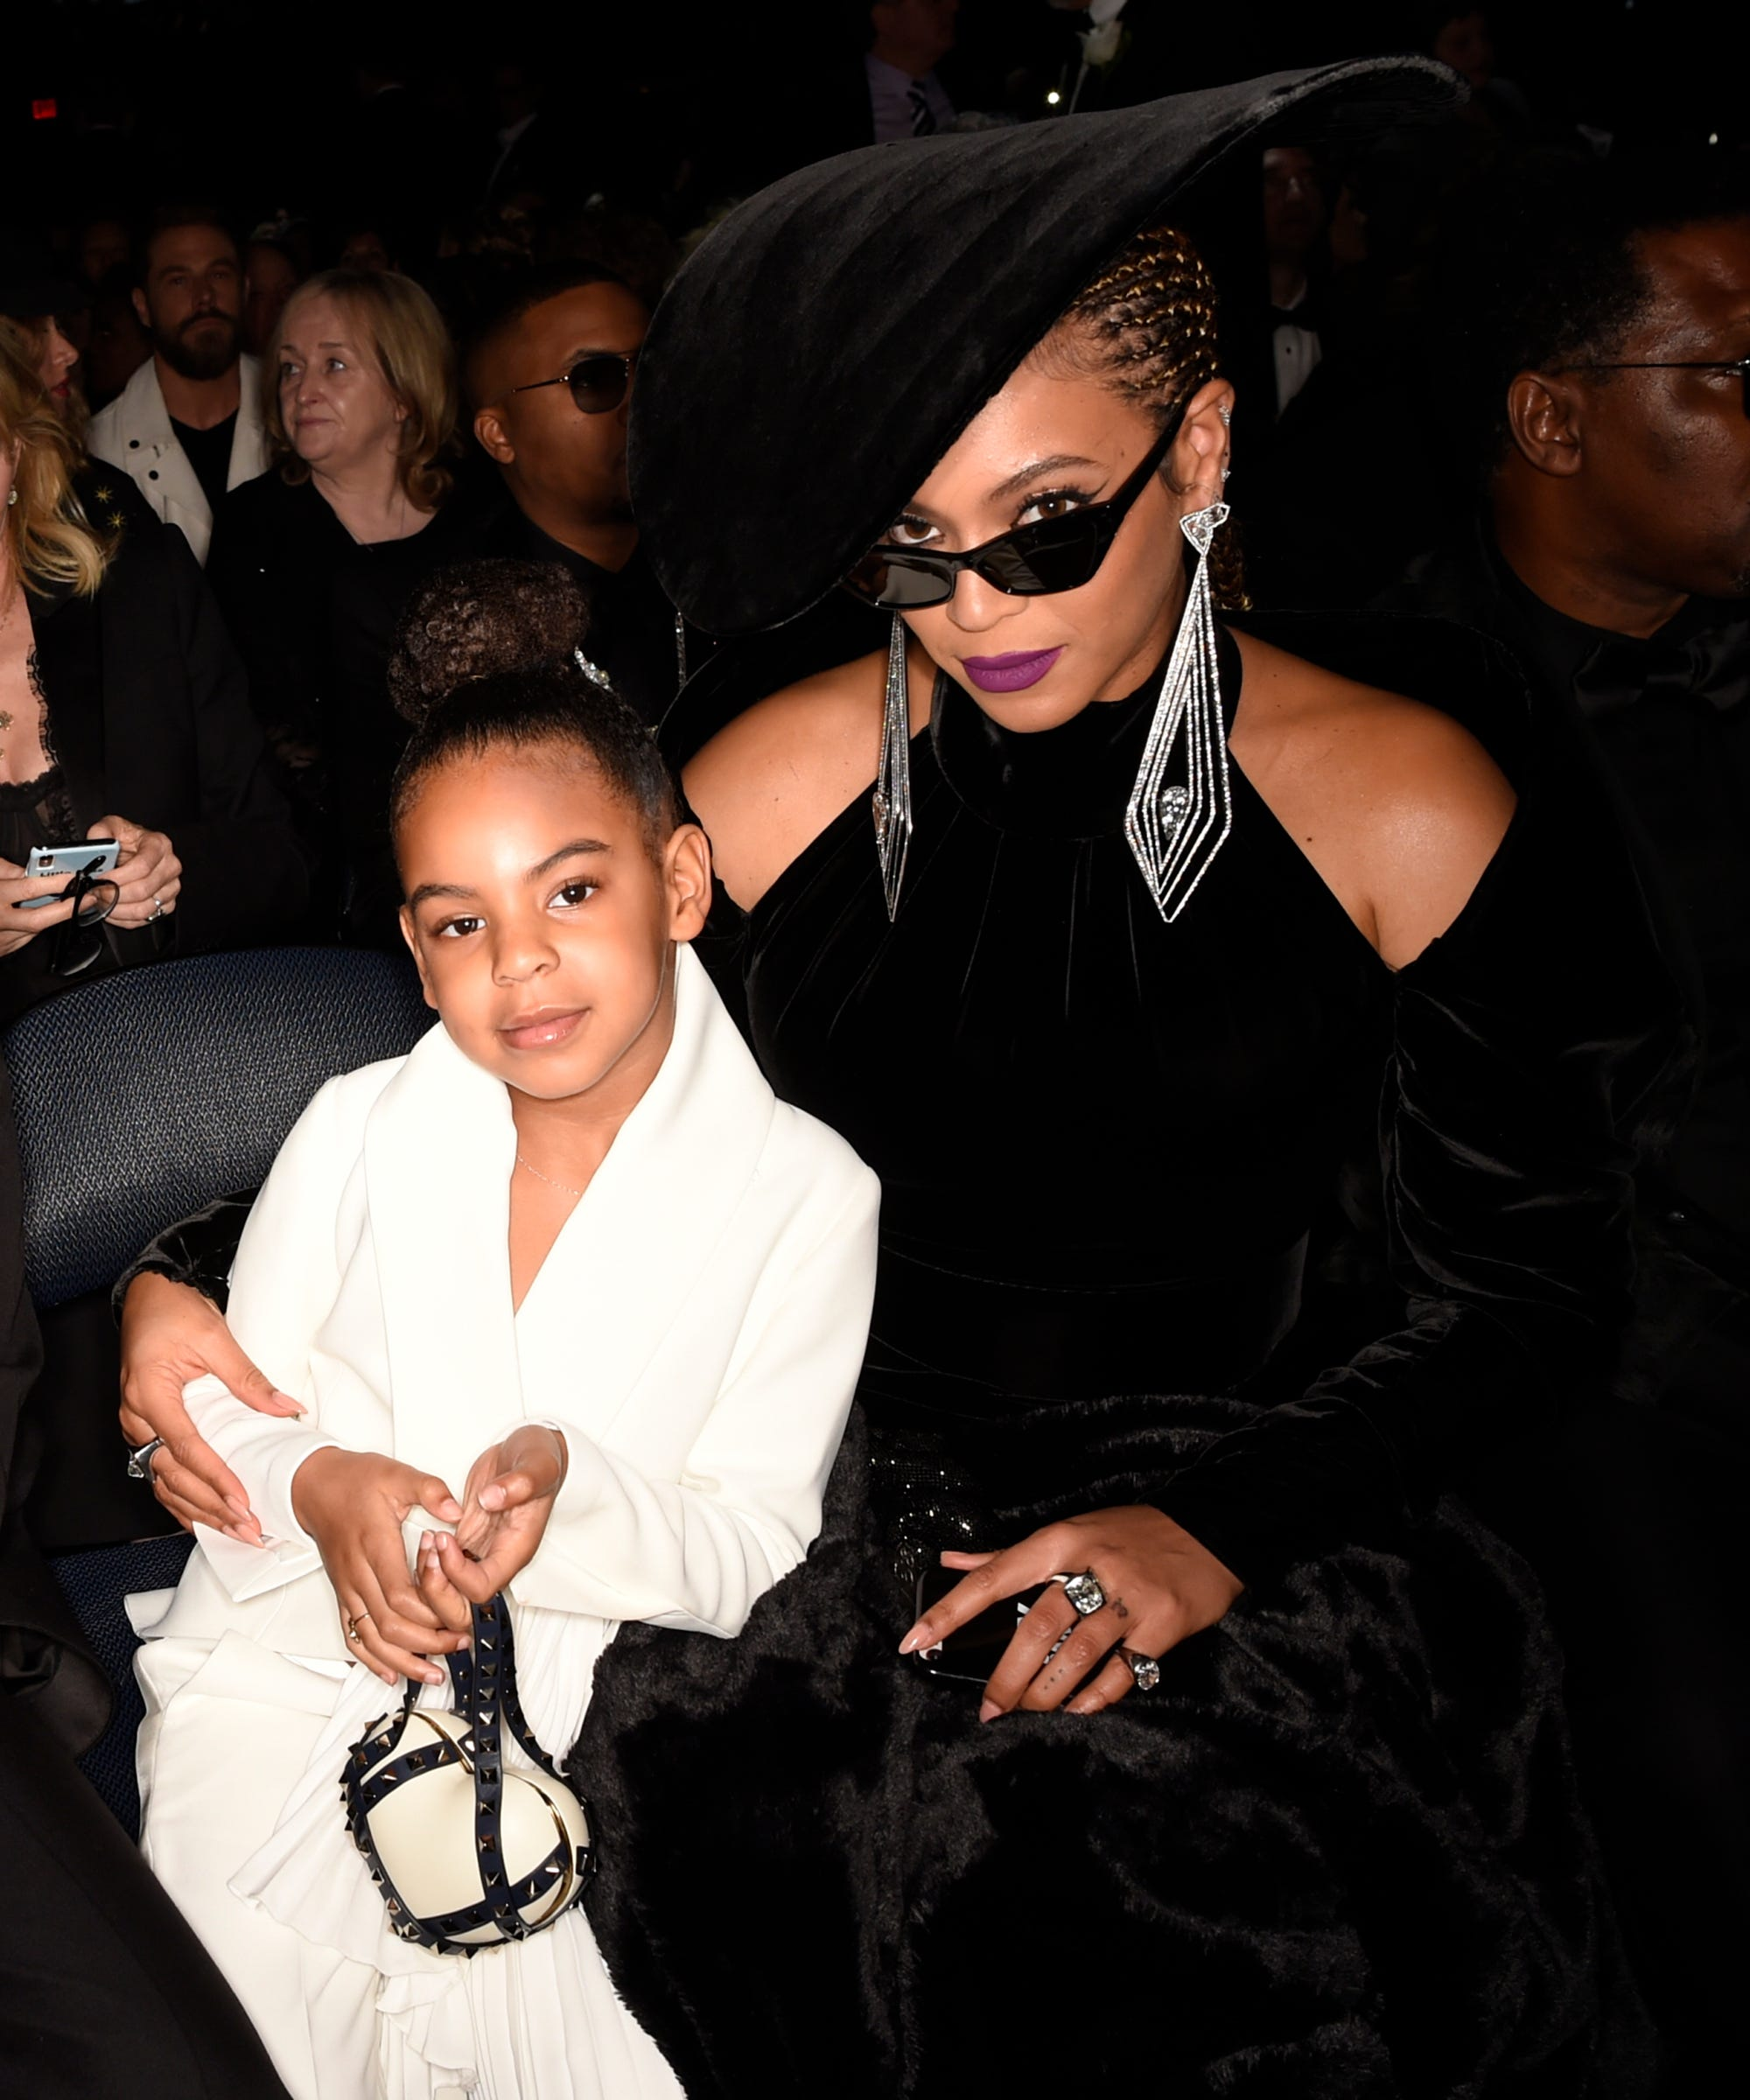 limitless world beyonce built for blue ivy